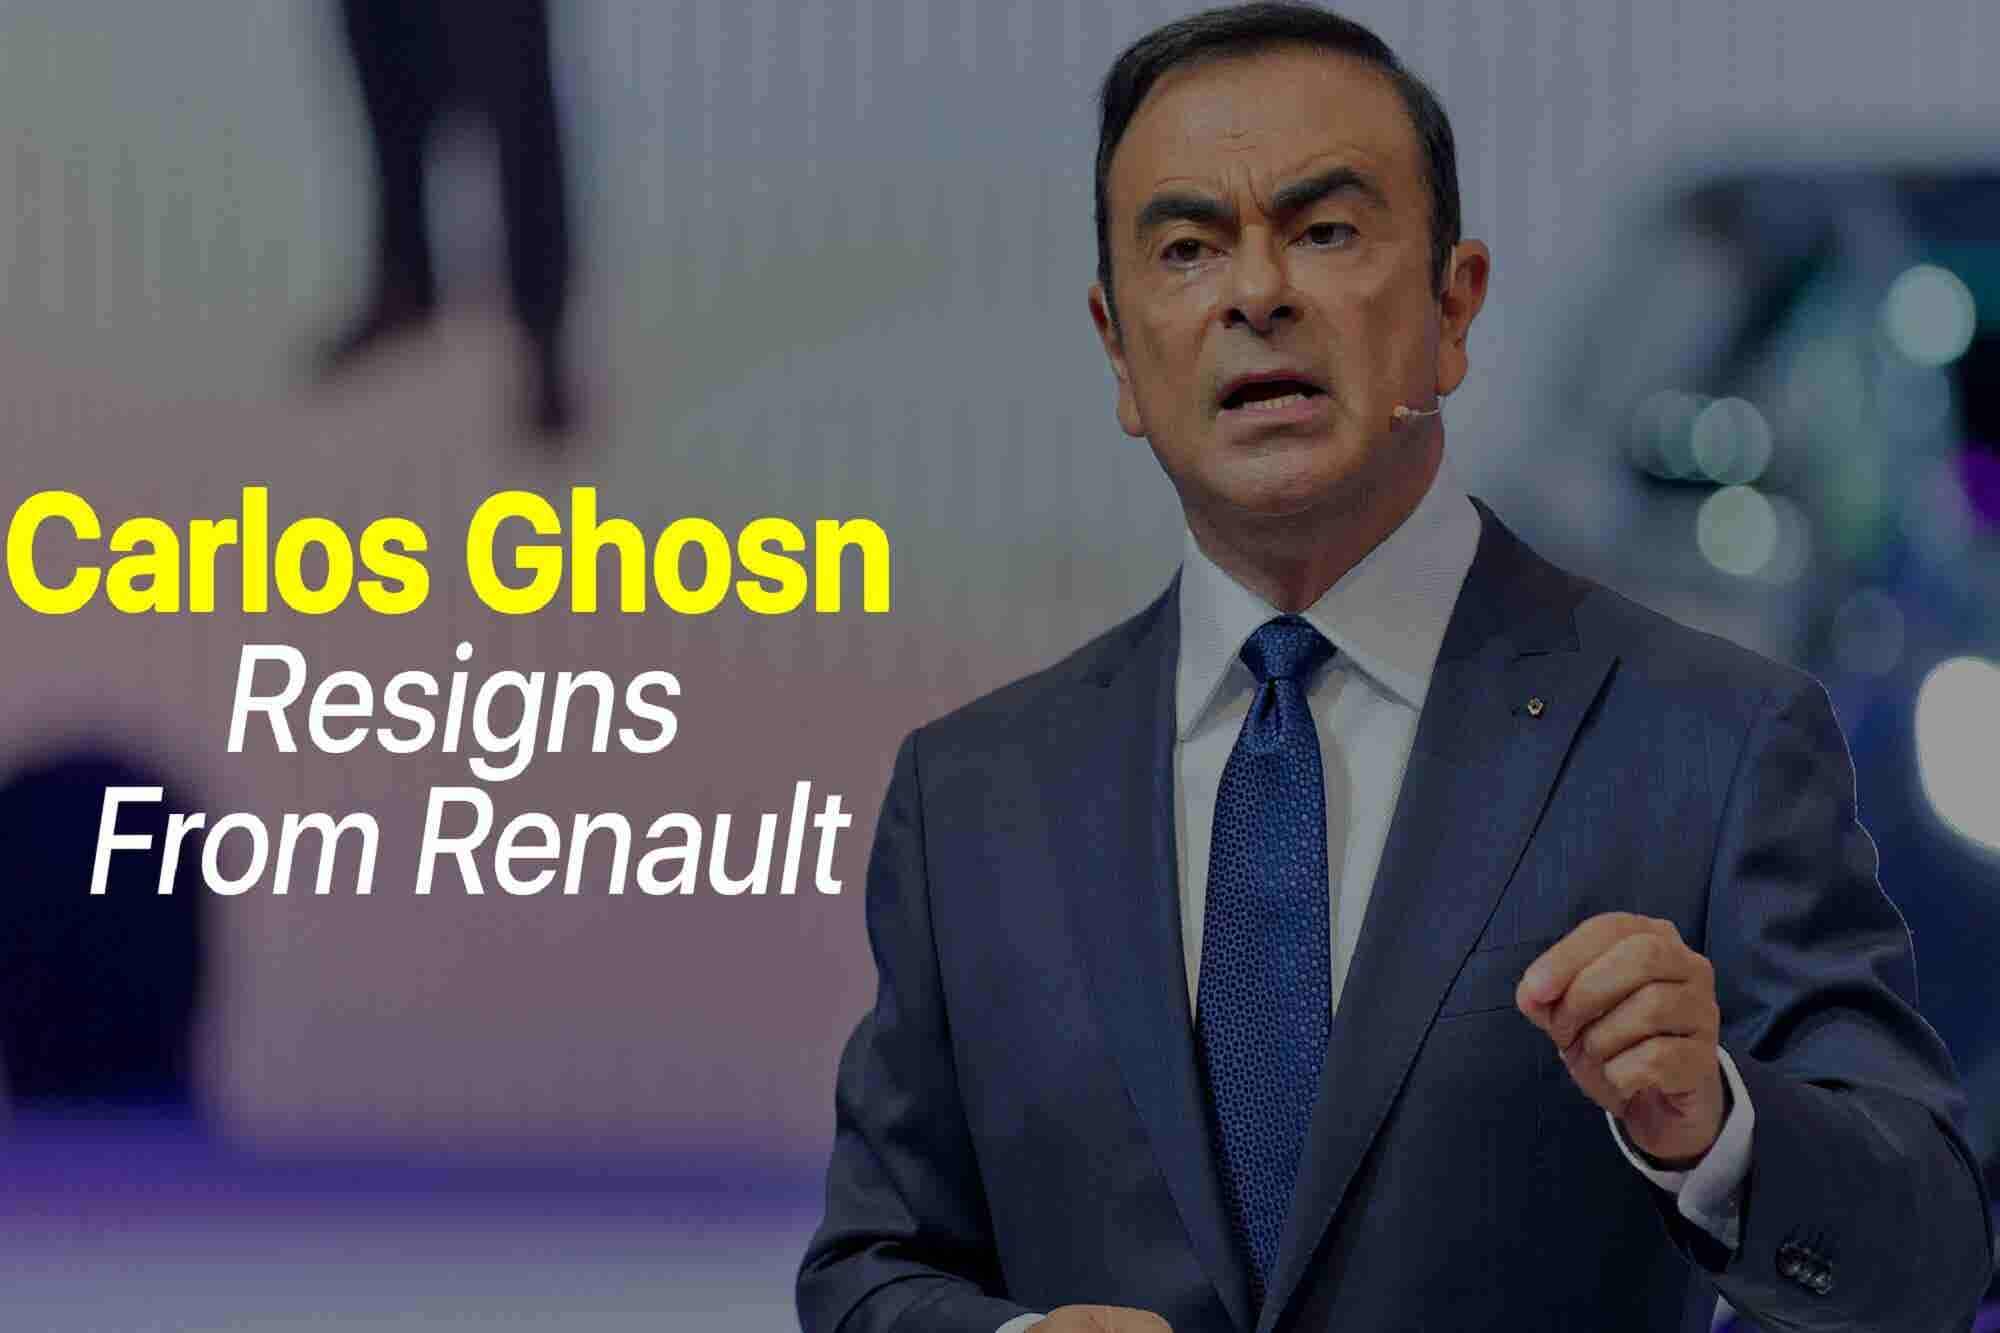 Friday Flashback: Carlos Ghosn Resigns From Renault Amid Misconduct Charges